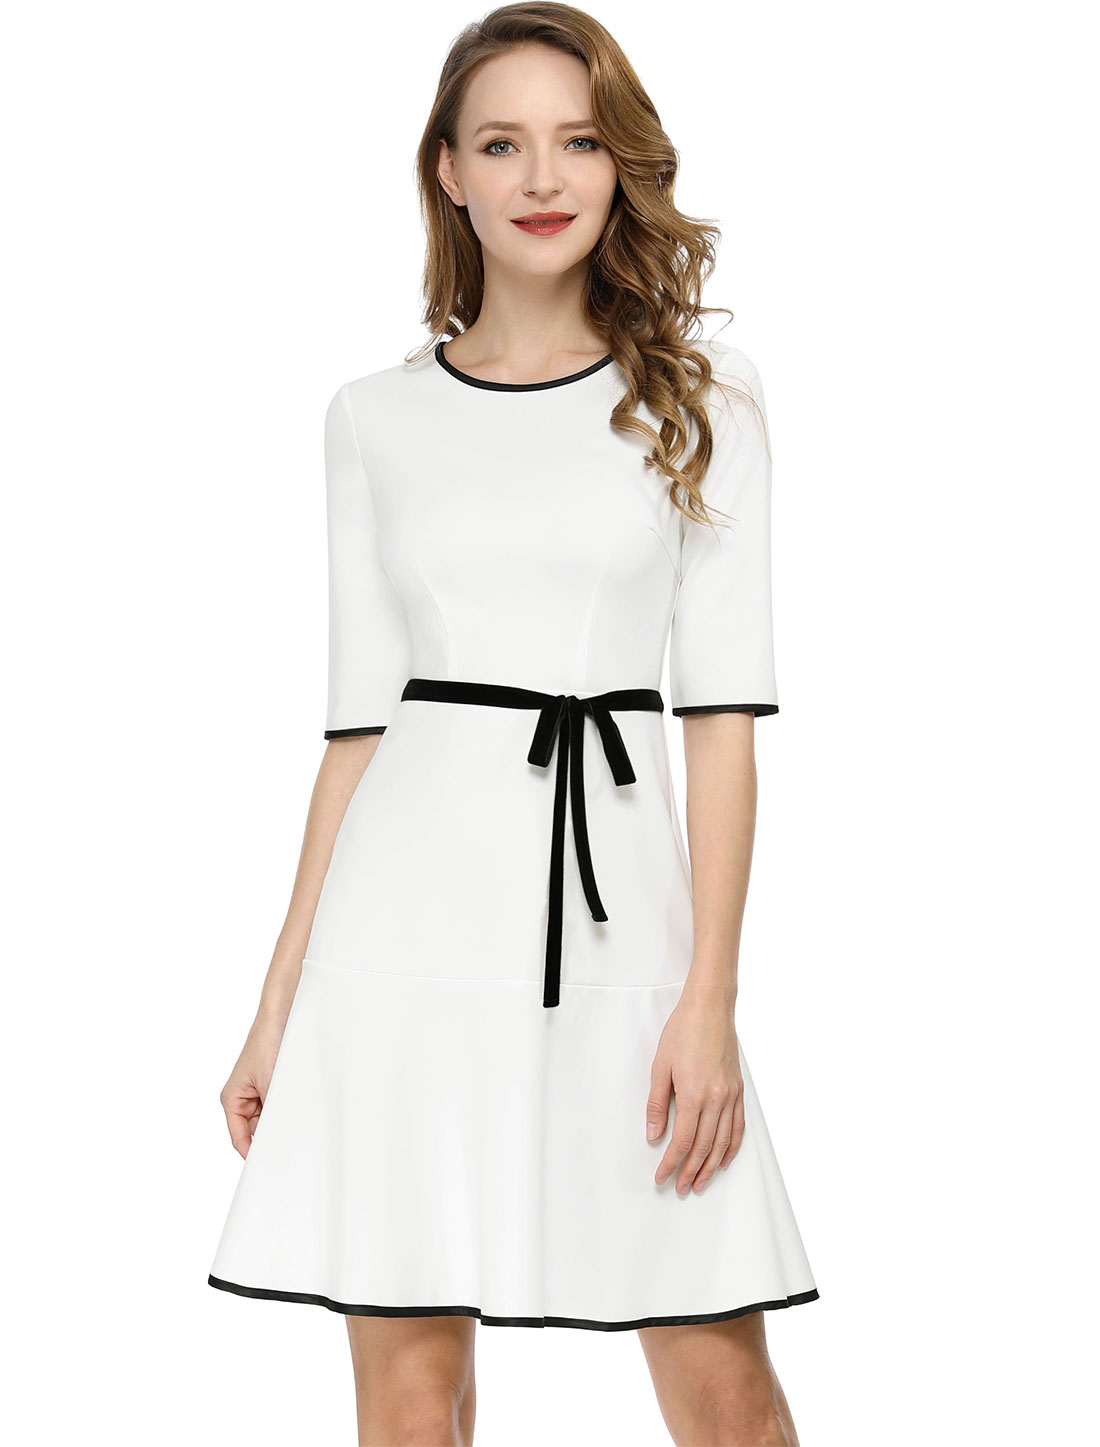 Women's Half Sleeve Contrast Trim Ruffled Hem A-line Dress White M (US 10)